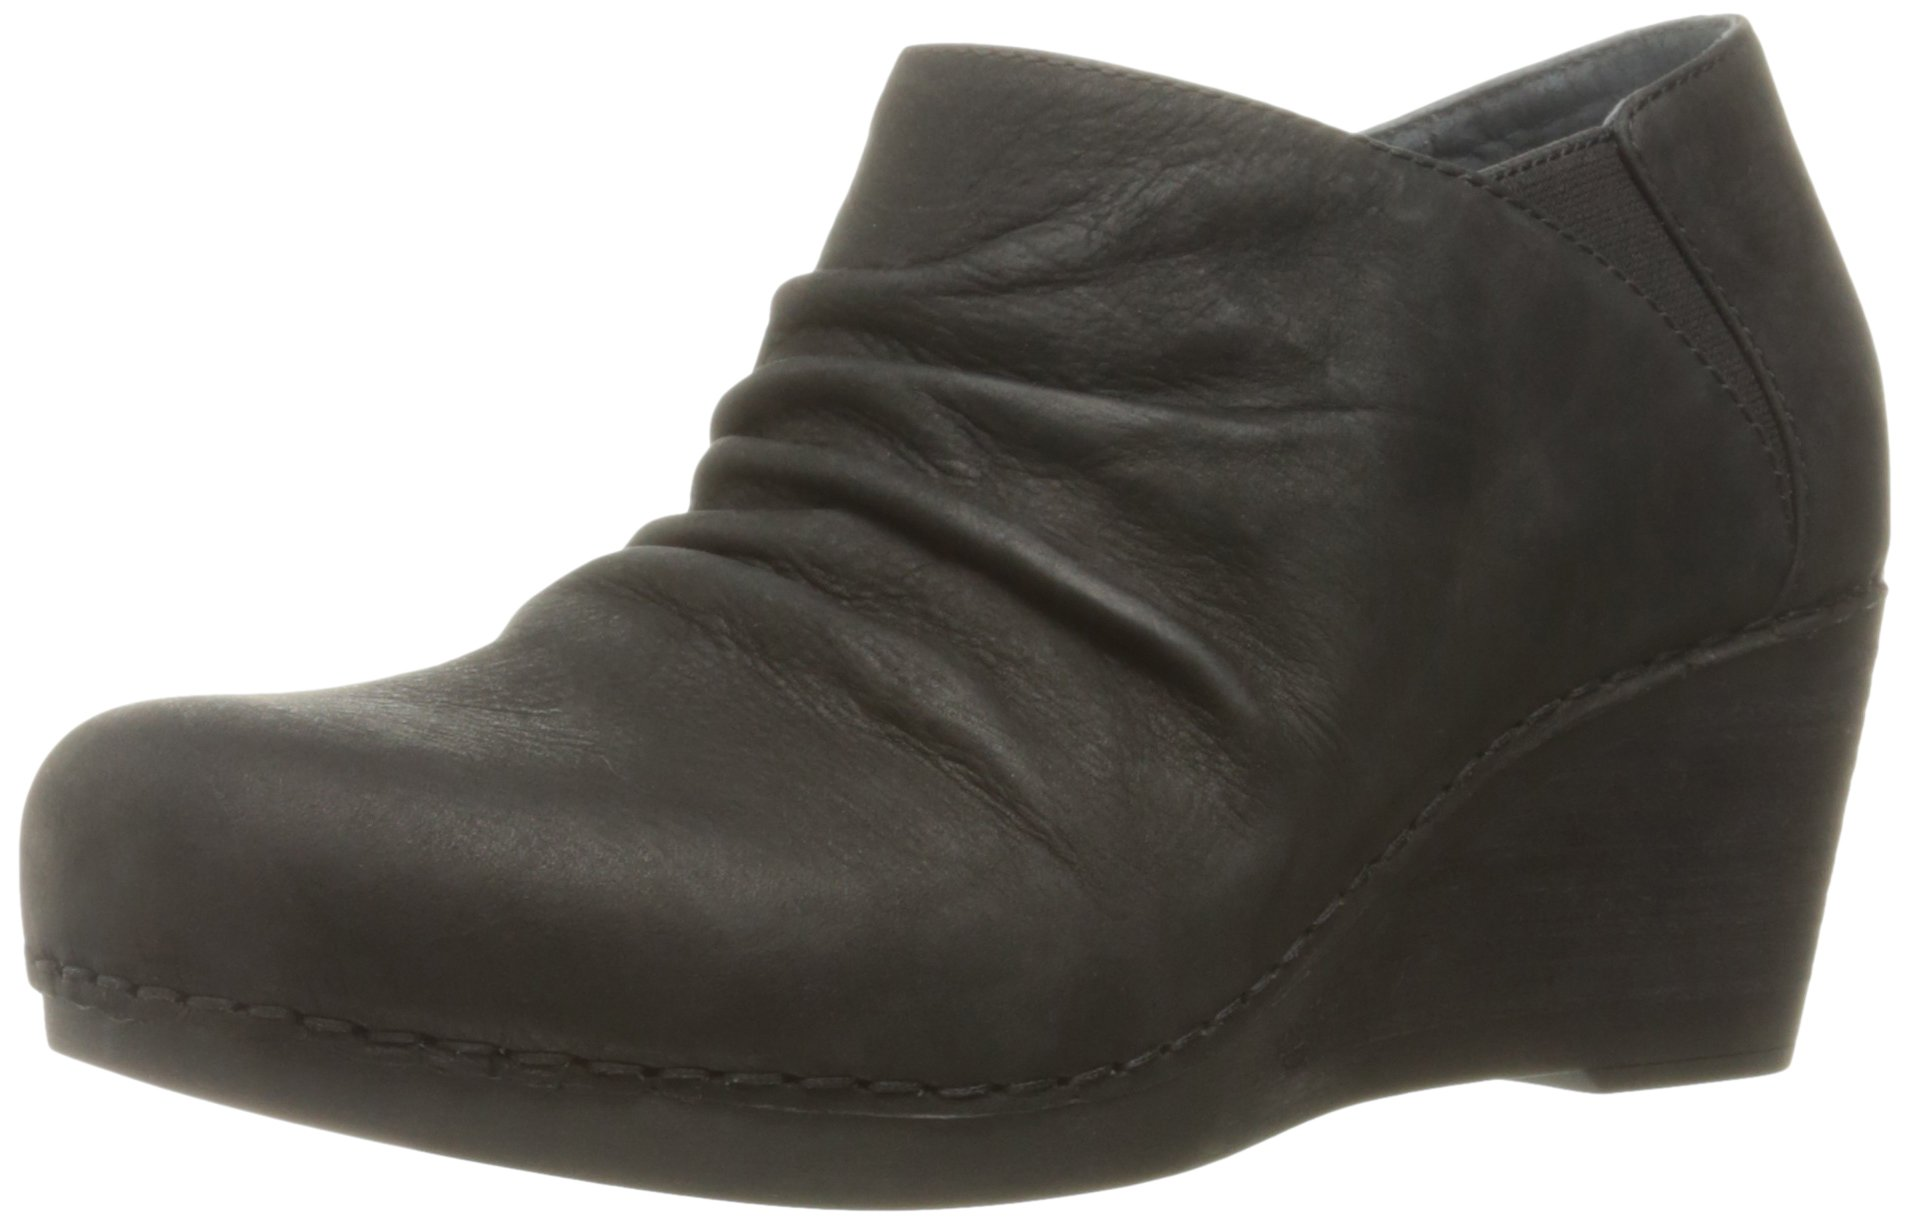 Dansko Women's Sheena Boot, Black, 38 EU/7.5-8 M US by Dansko (Image #1)